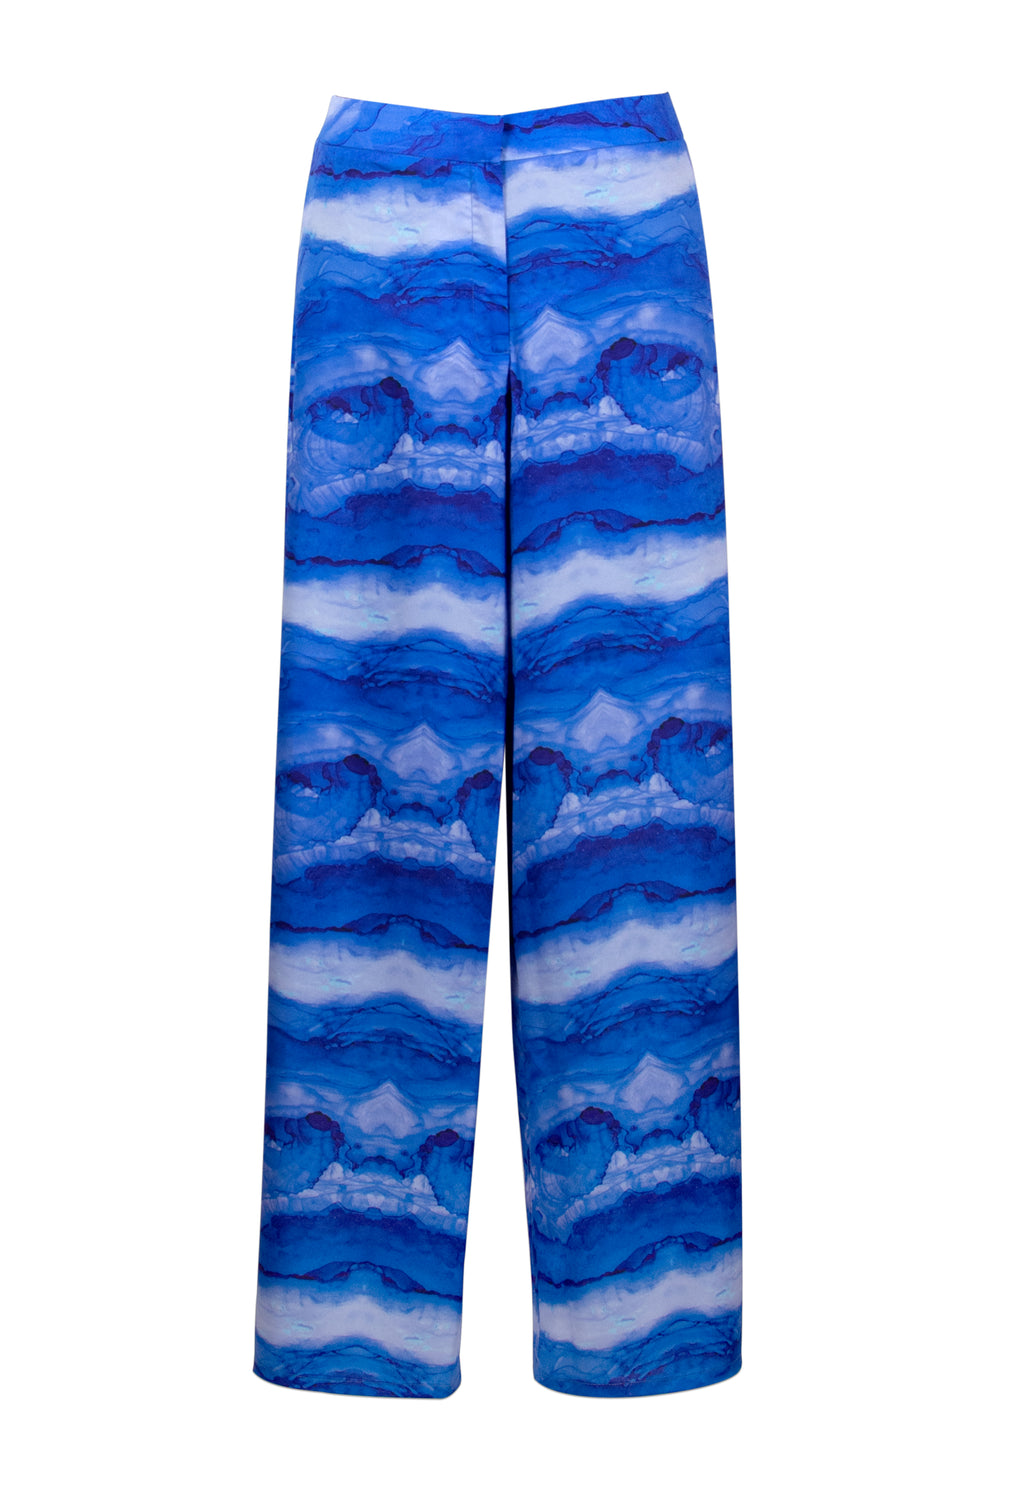 Blue Ocean Printed Pants